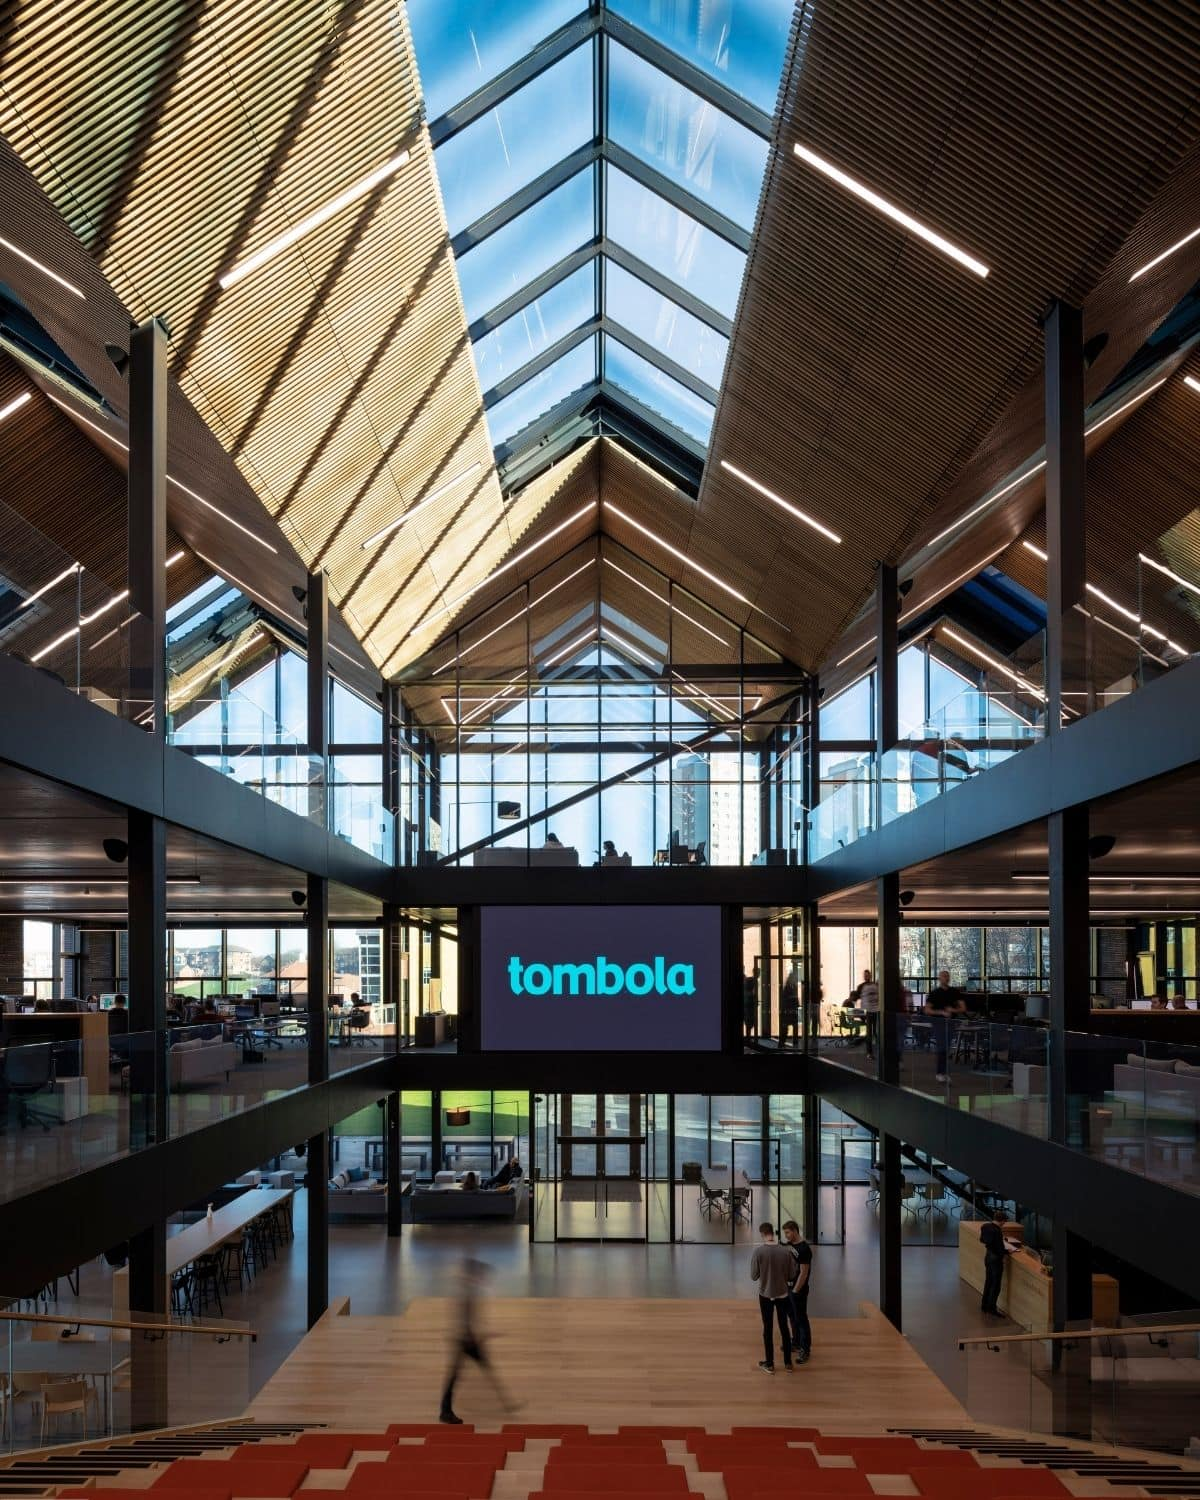 internal view of the tombola headquarters with large electrochromic glass facades